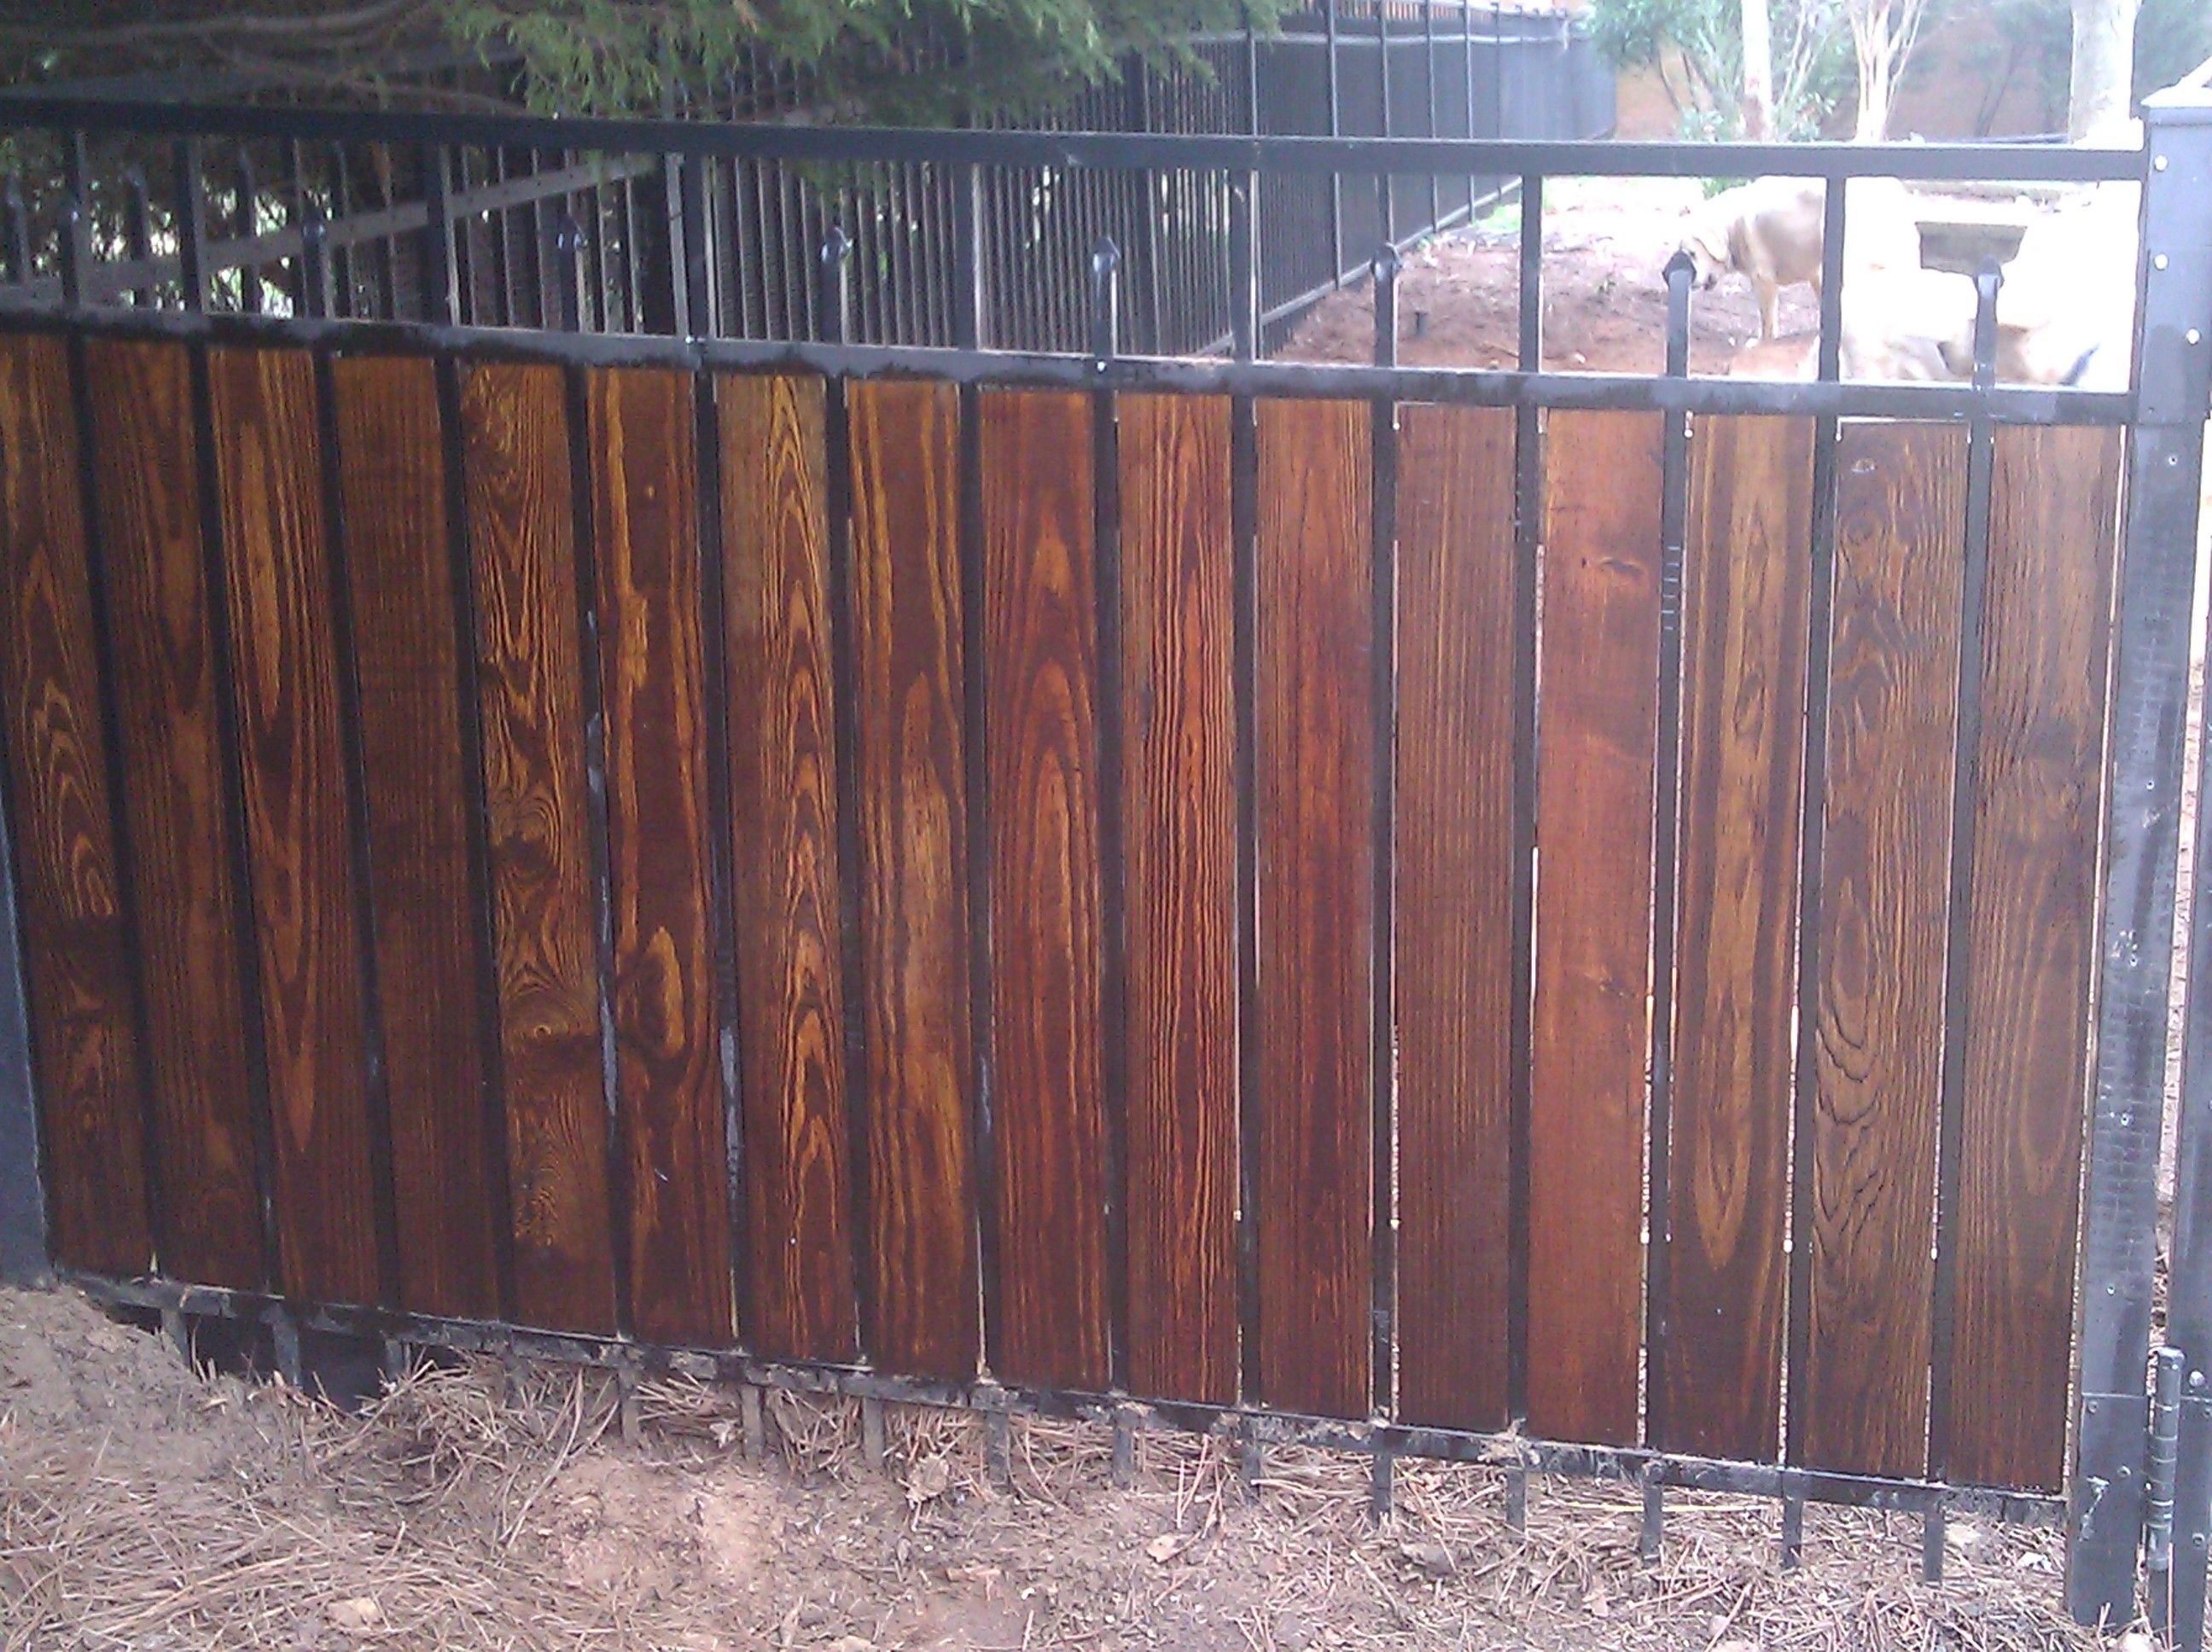 If you need a privacy fence and can t afford thousands for a new one